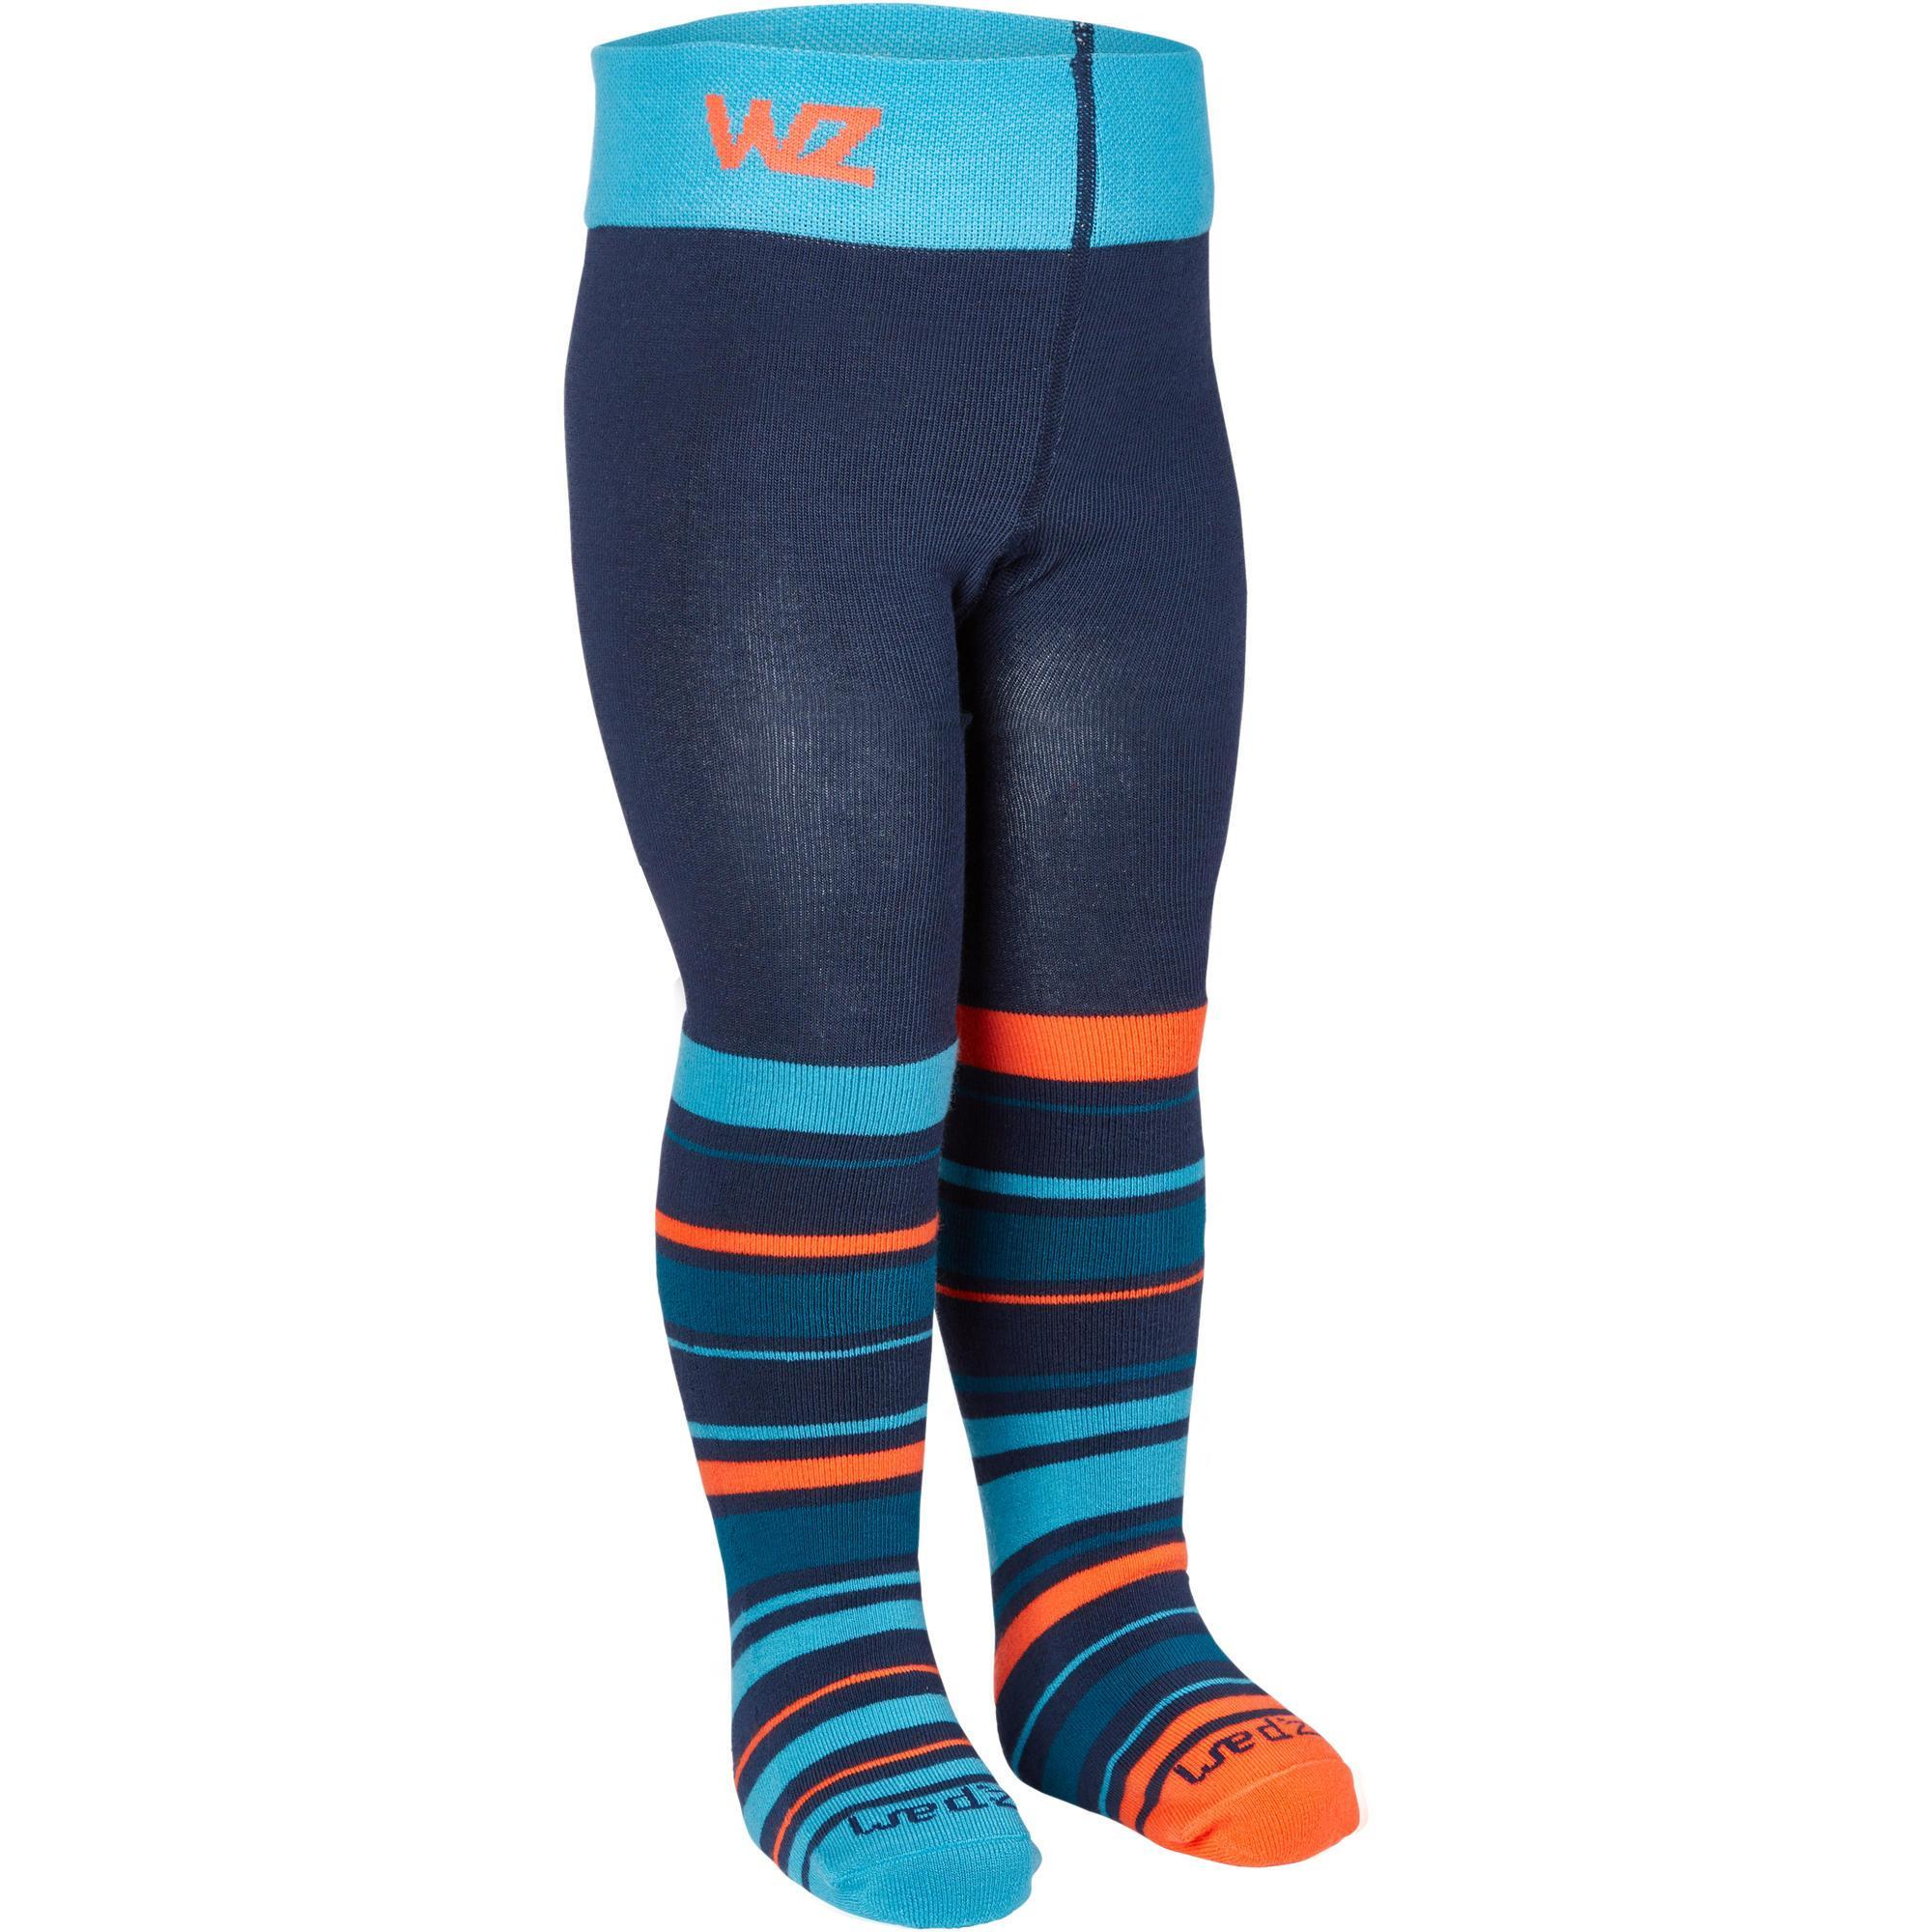 Jungen,Kinder,Kinder Strumpfhose Kinder blau orange | 03608449882811